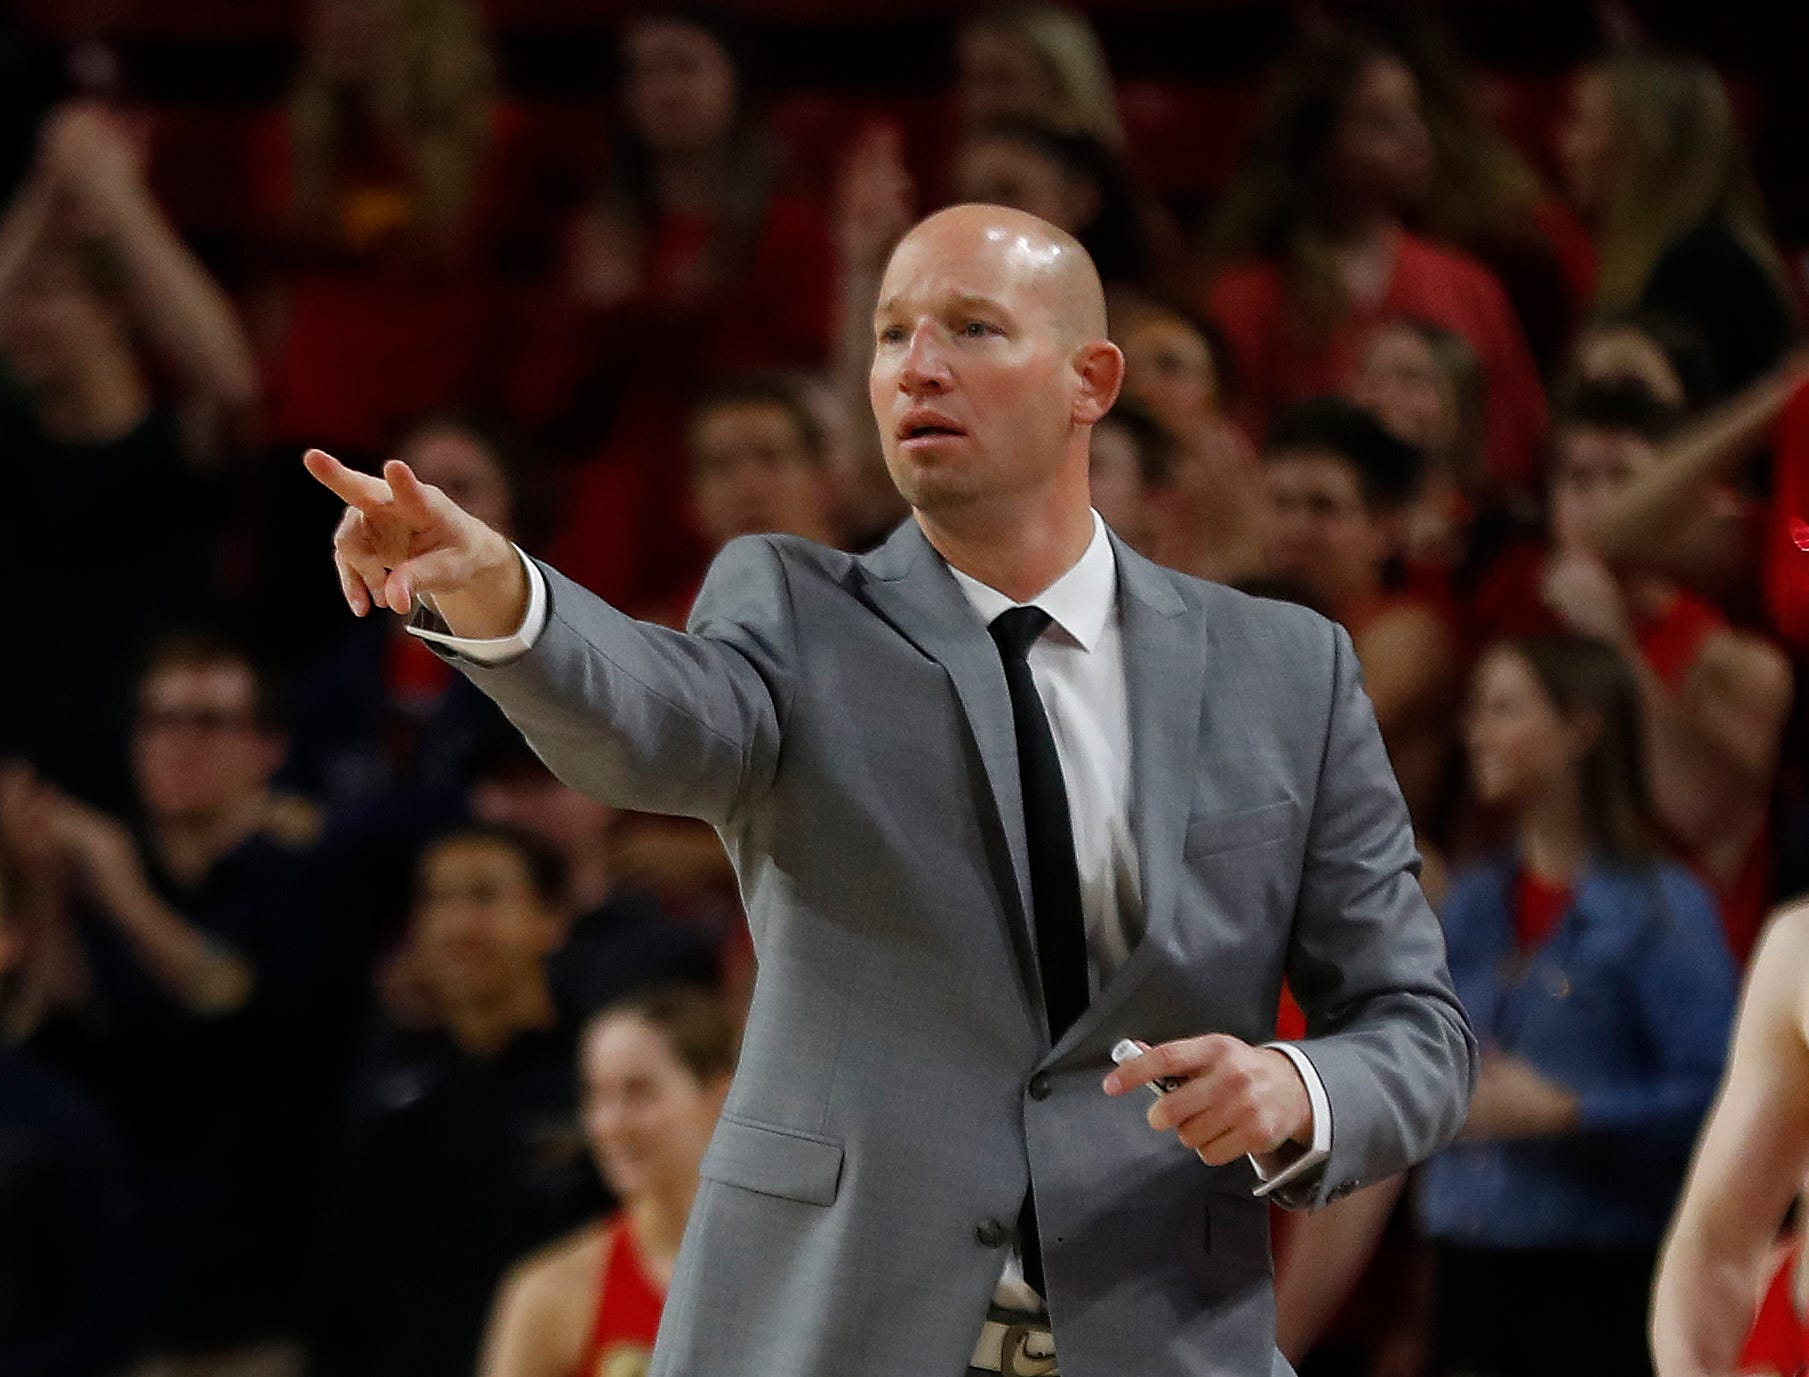 Chaparral's head coach Dan Peterson talks to his team during second half of the 6A boys basketball semifinal against Hamilton at Wells Fargo Arena in Tempe, Ariz. on February 21, 2019.